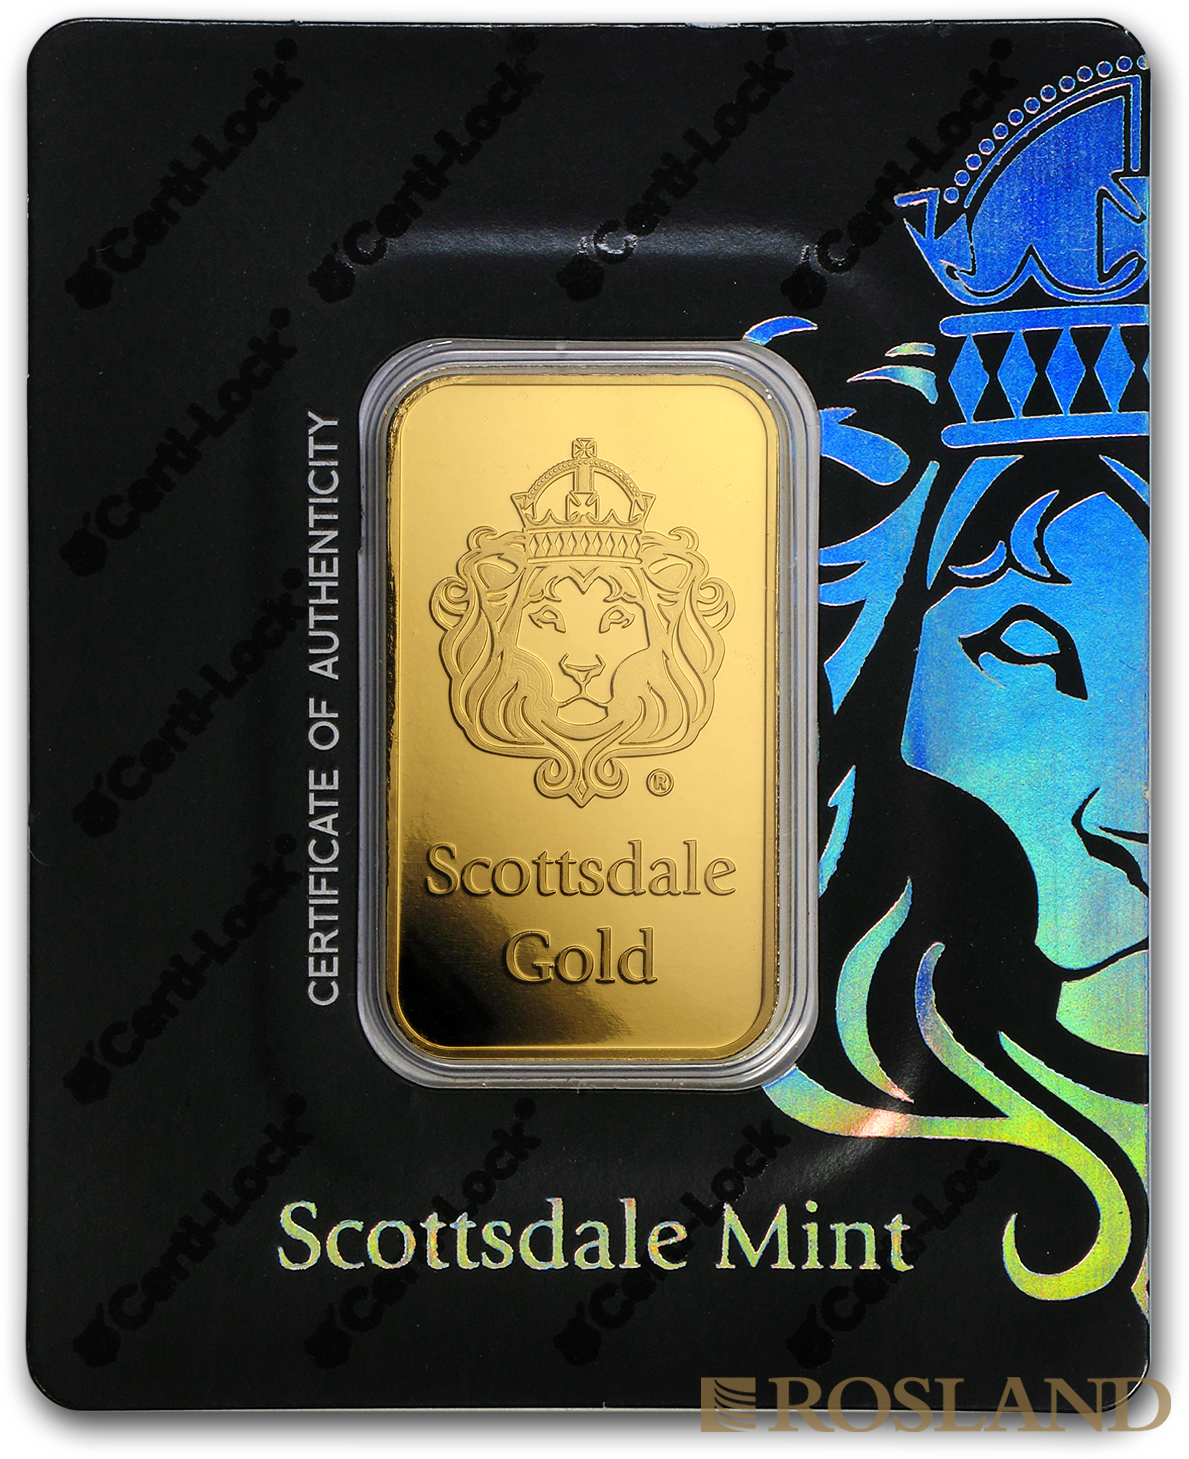 1 Unze Goldbarren Scottsdale Mint Löwe